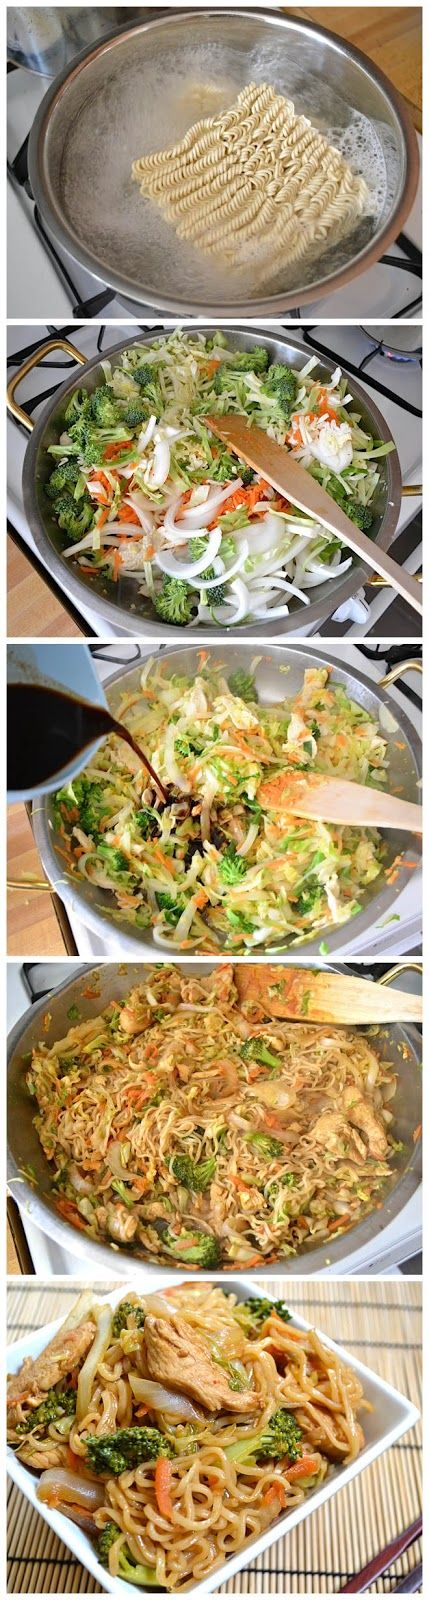 Chicken Yakisoba Ingredients:  ½ head green cabbage 1 medium yellow onion 2 medium carrots 1 small crown broccoli 2 inches fresh ginger 1 large chicken breast 2 Tbsp vegetable oil 2 (3 oz.) packages ramen noodles seasoning packets discarded  1 tsp sesame oil (optional)  ¼ cup soy sauce  ¼ cup worcestershire sauce  2 Tbsp ketchup (up to) 1 Tbsp sriracha hot sauce  1 Tbsp sugar